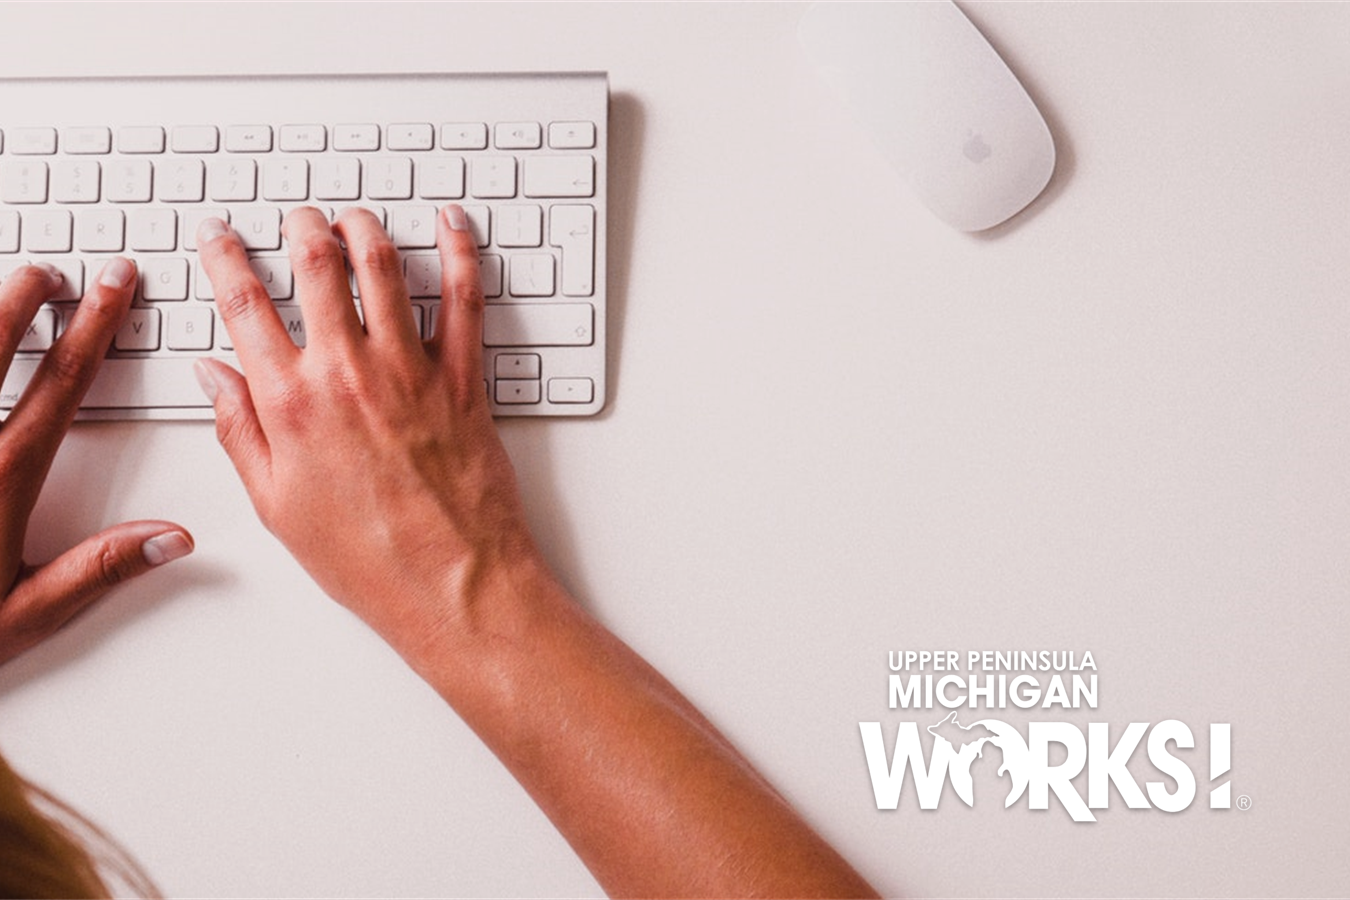 Hands are typing on a white keyboard.